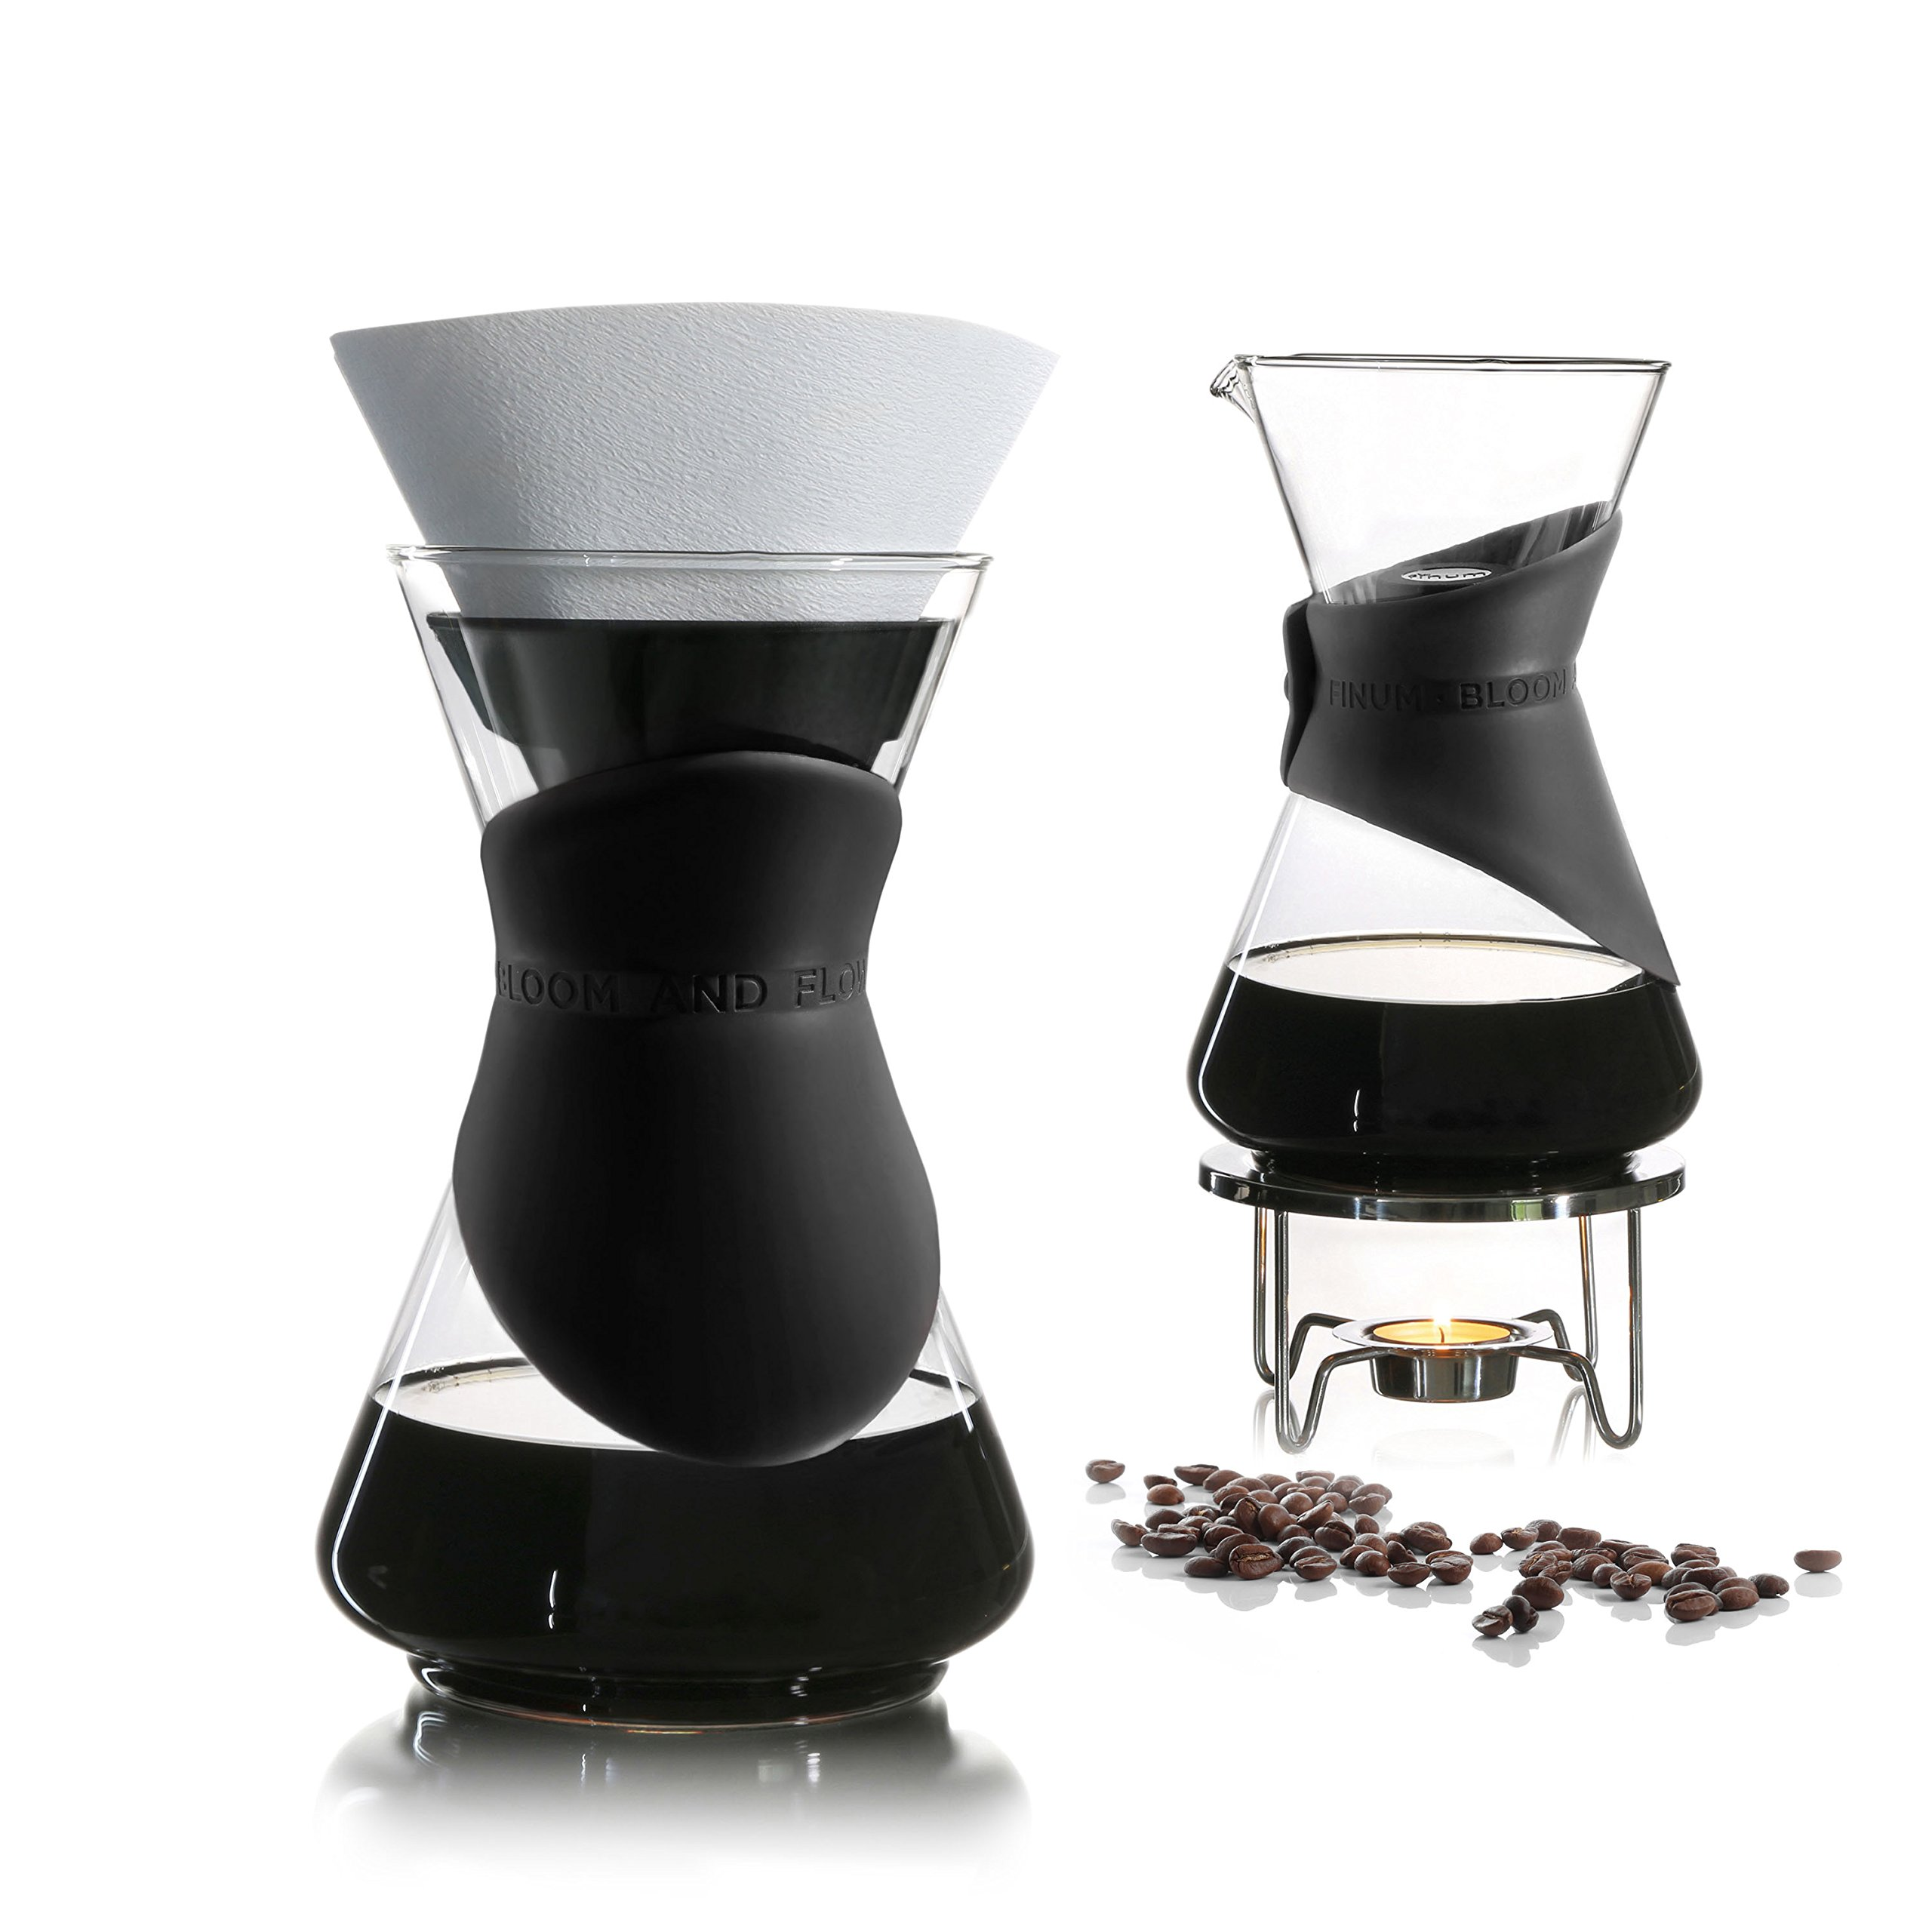 BLOOM AND FLOW, black - pour over coffee maker (4 retail units per case) …